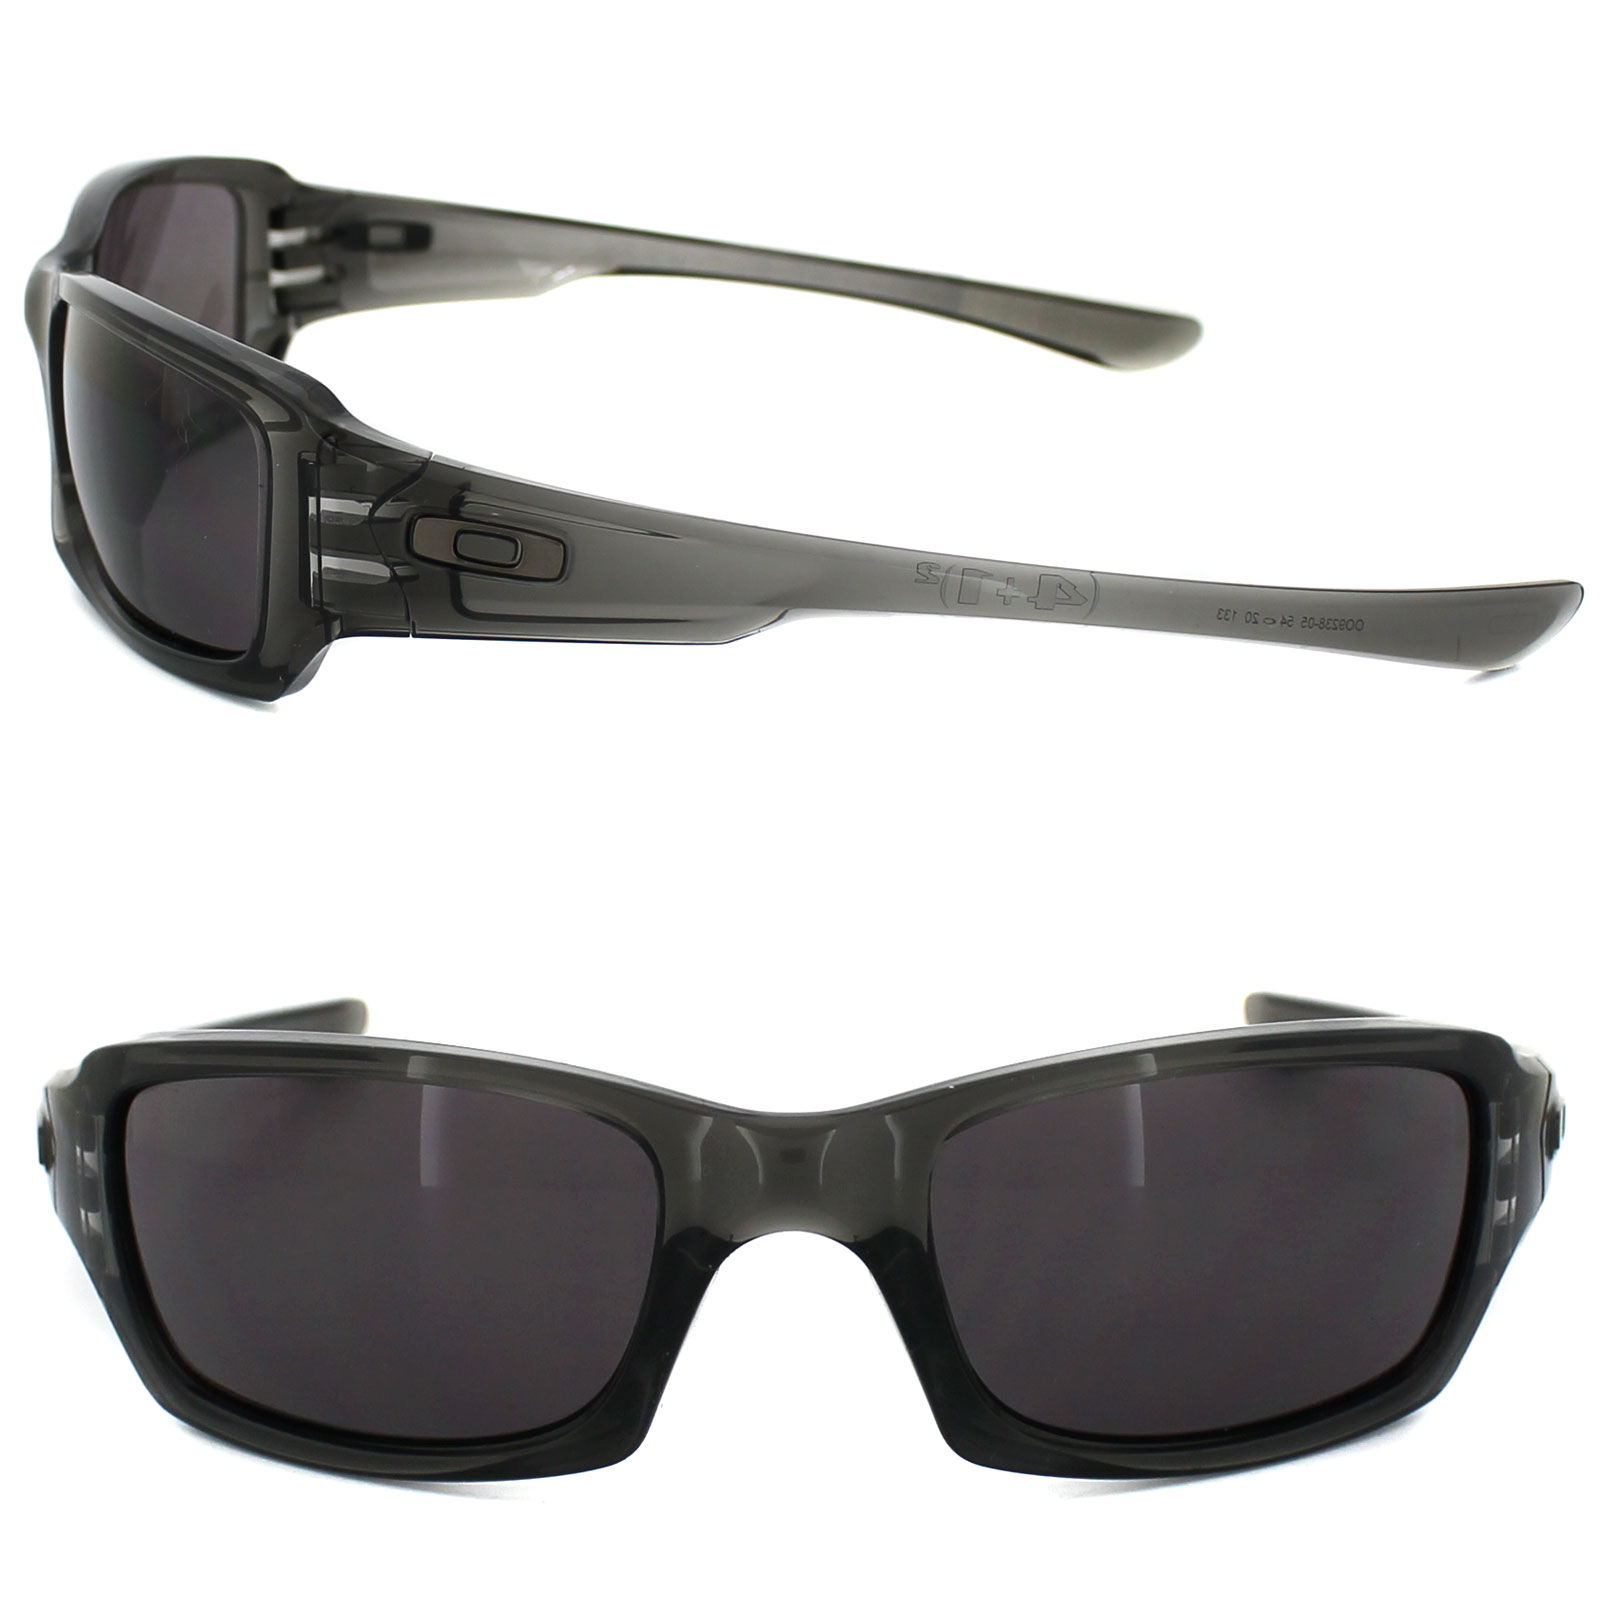 9cd7c62708d19 Sentinel Oakley Sunglasses Fives Squared OO9238-05 Grey Smoke Warm Grey